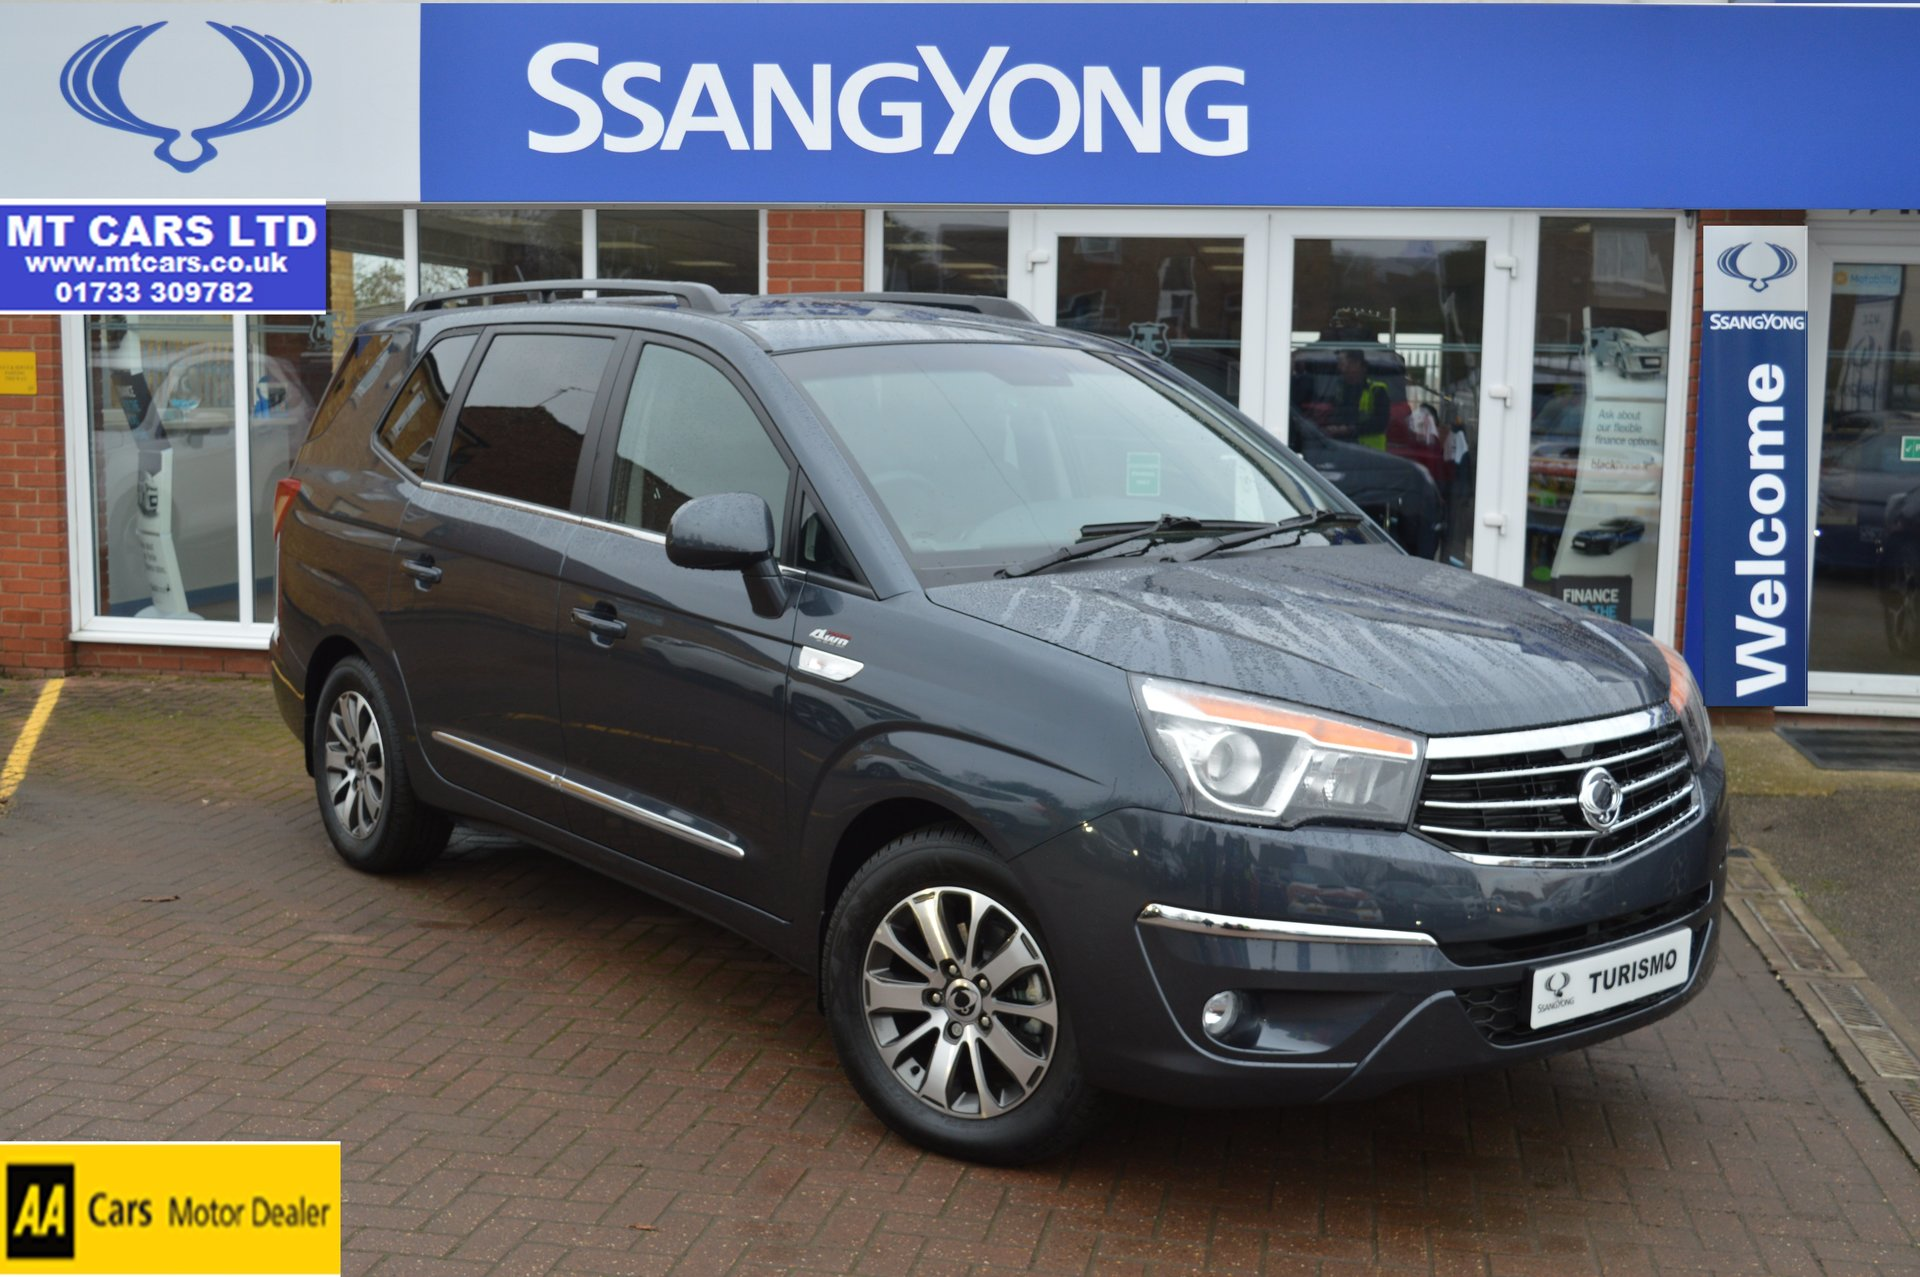 SsangYong Turismo 2.2D